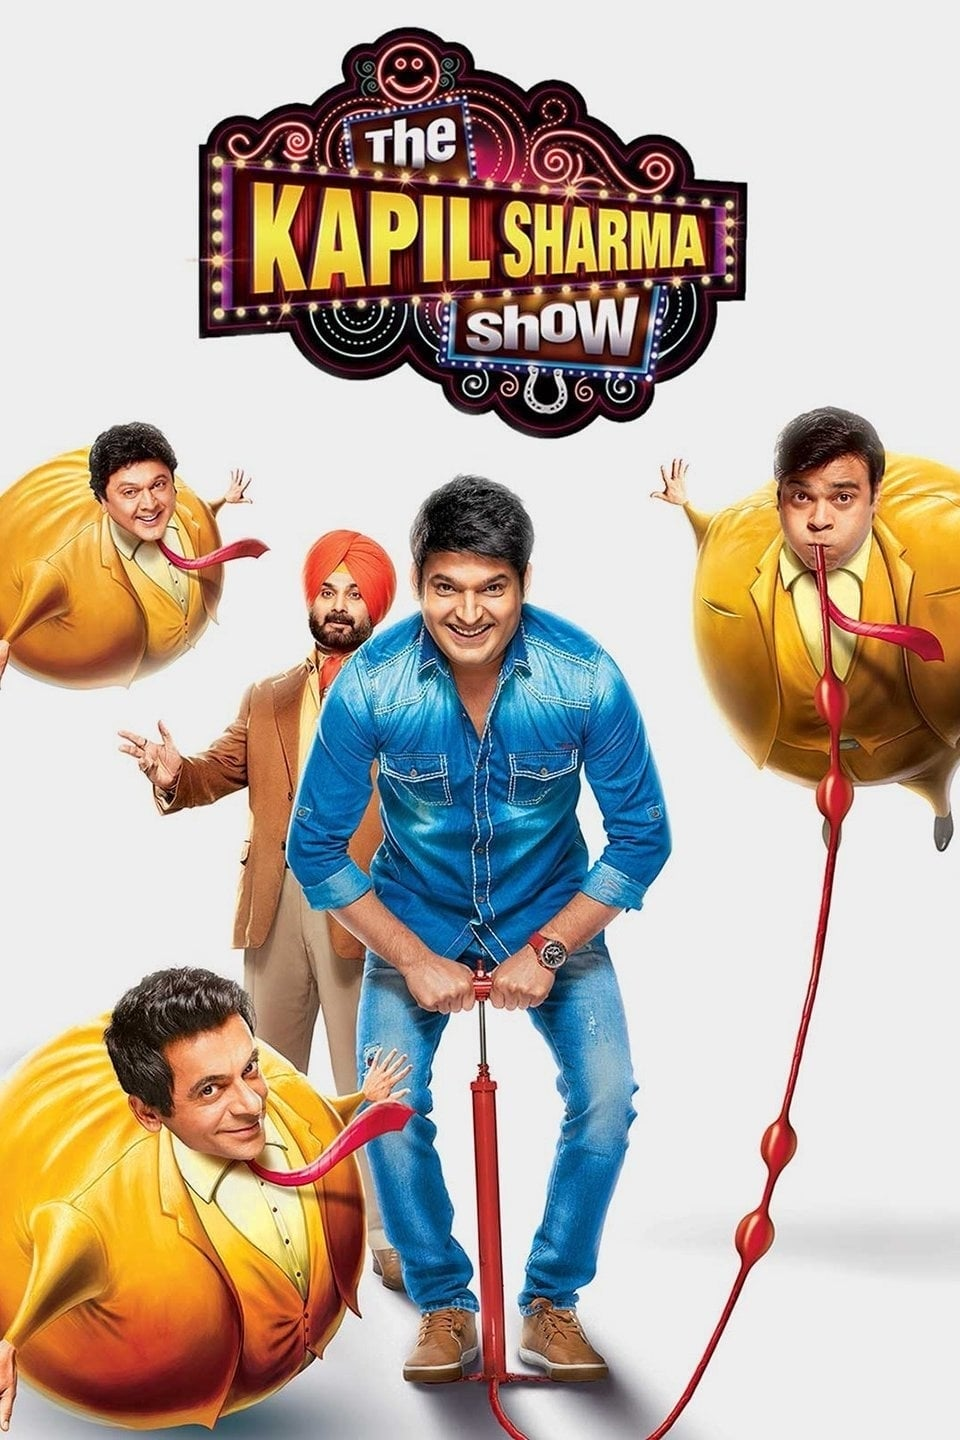 The Kapil Sharma Show (2019) Season 2 [18th Jan 2020] 576p HDTV | Full Episode